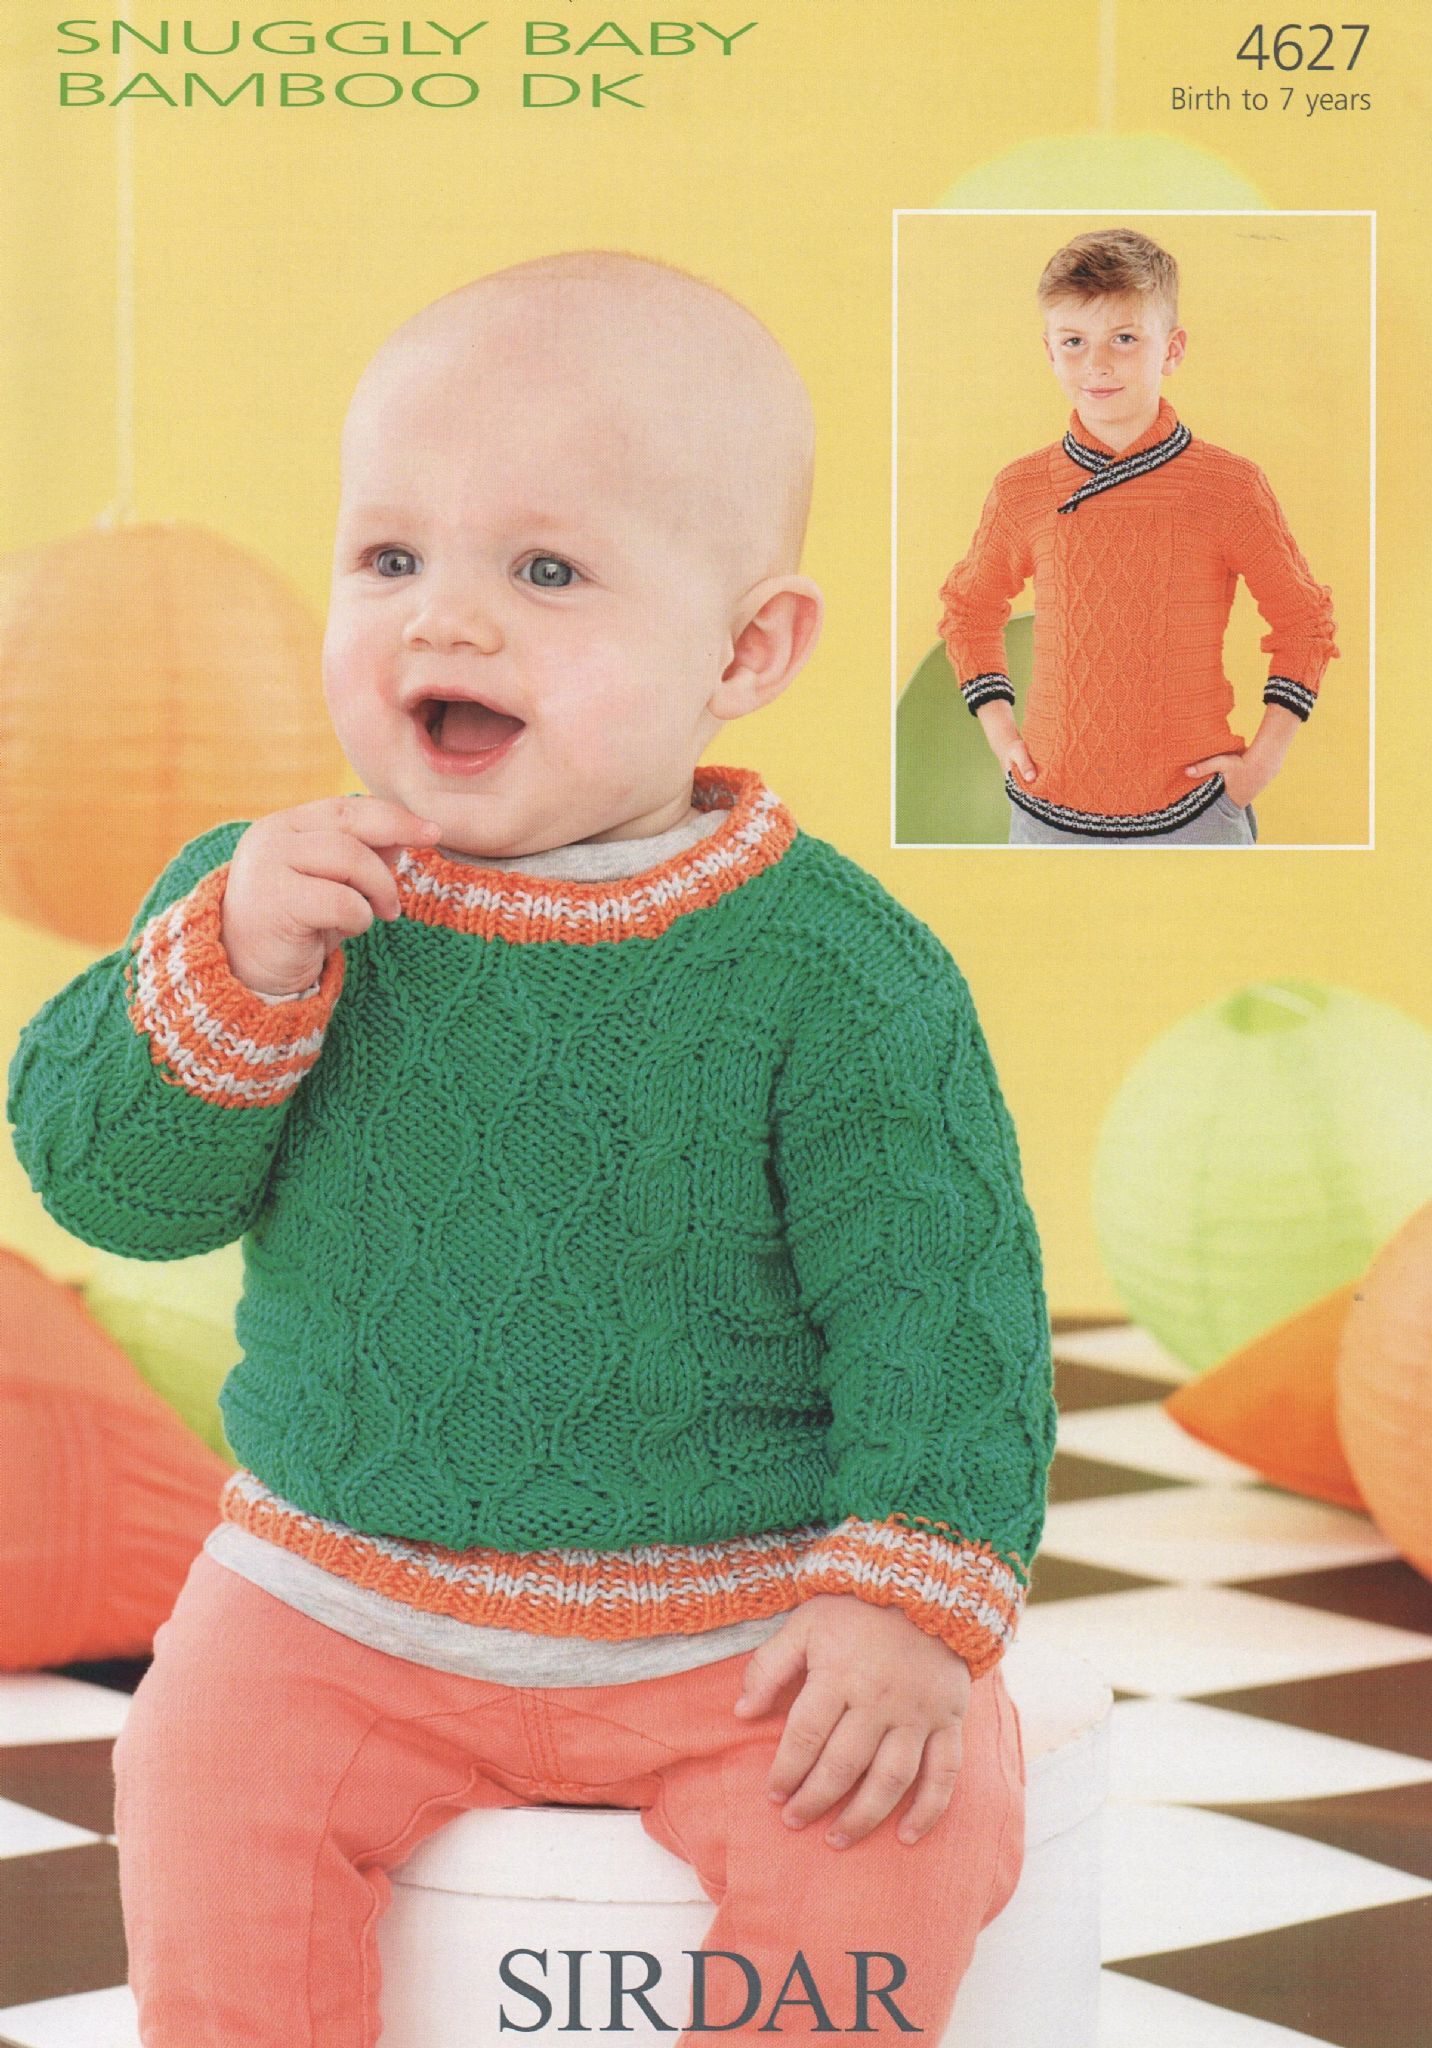 4627 - SIRDAR SNUGGLY BABY BAMBOO DK SWEATER KNITTING PATTERN - TO ...